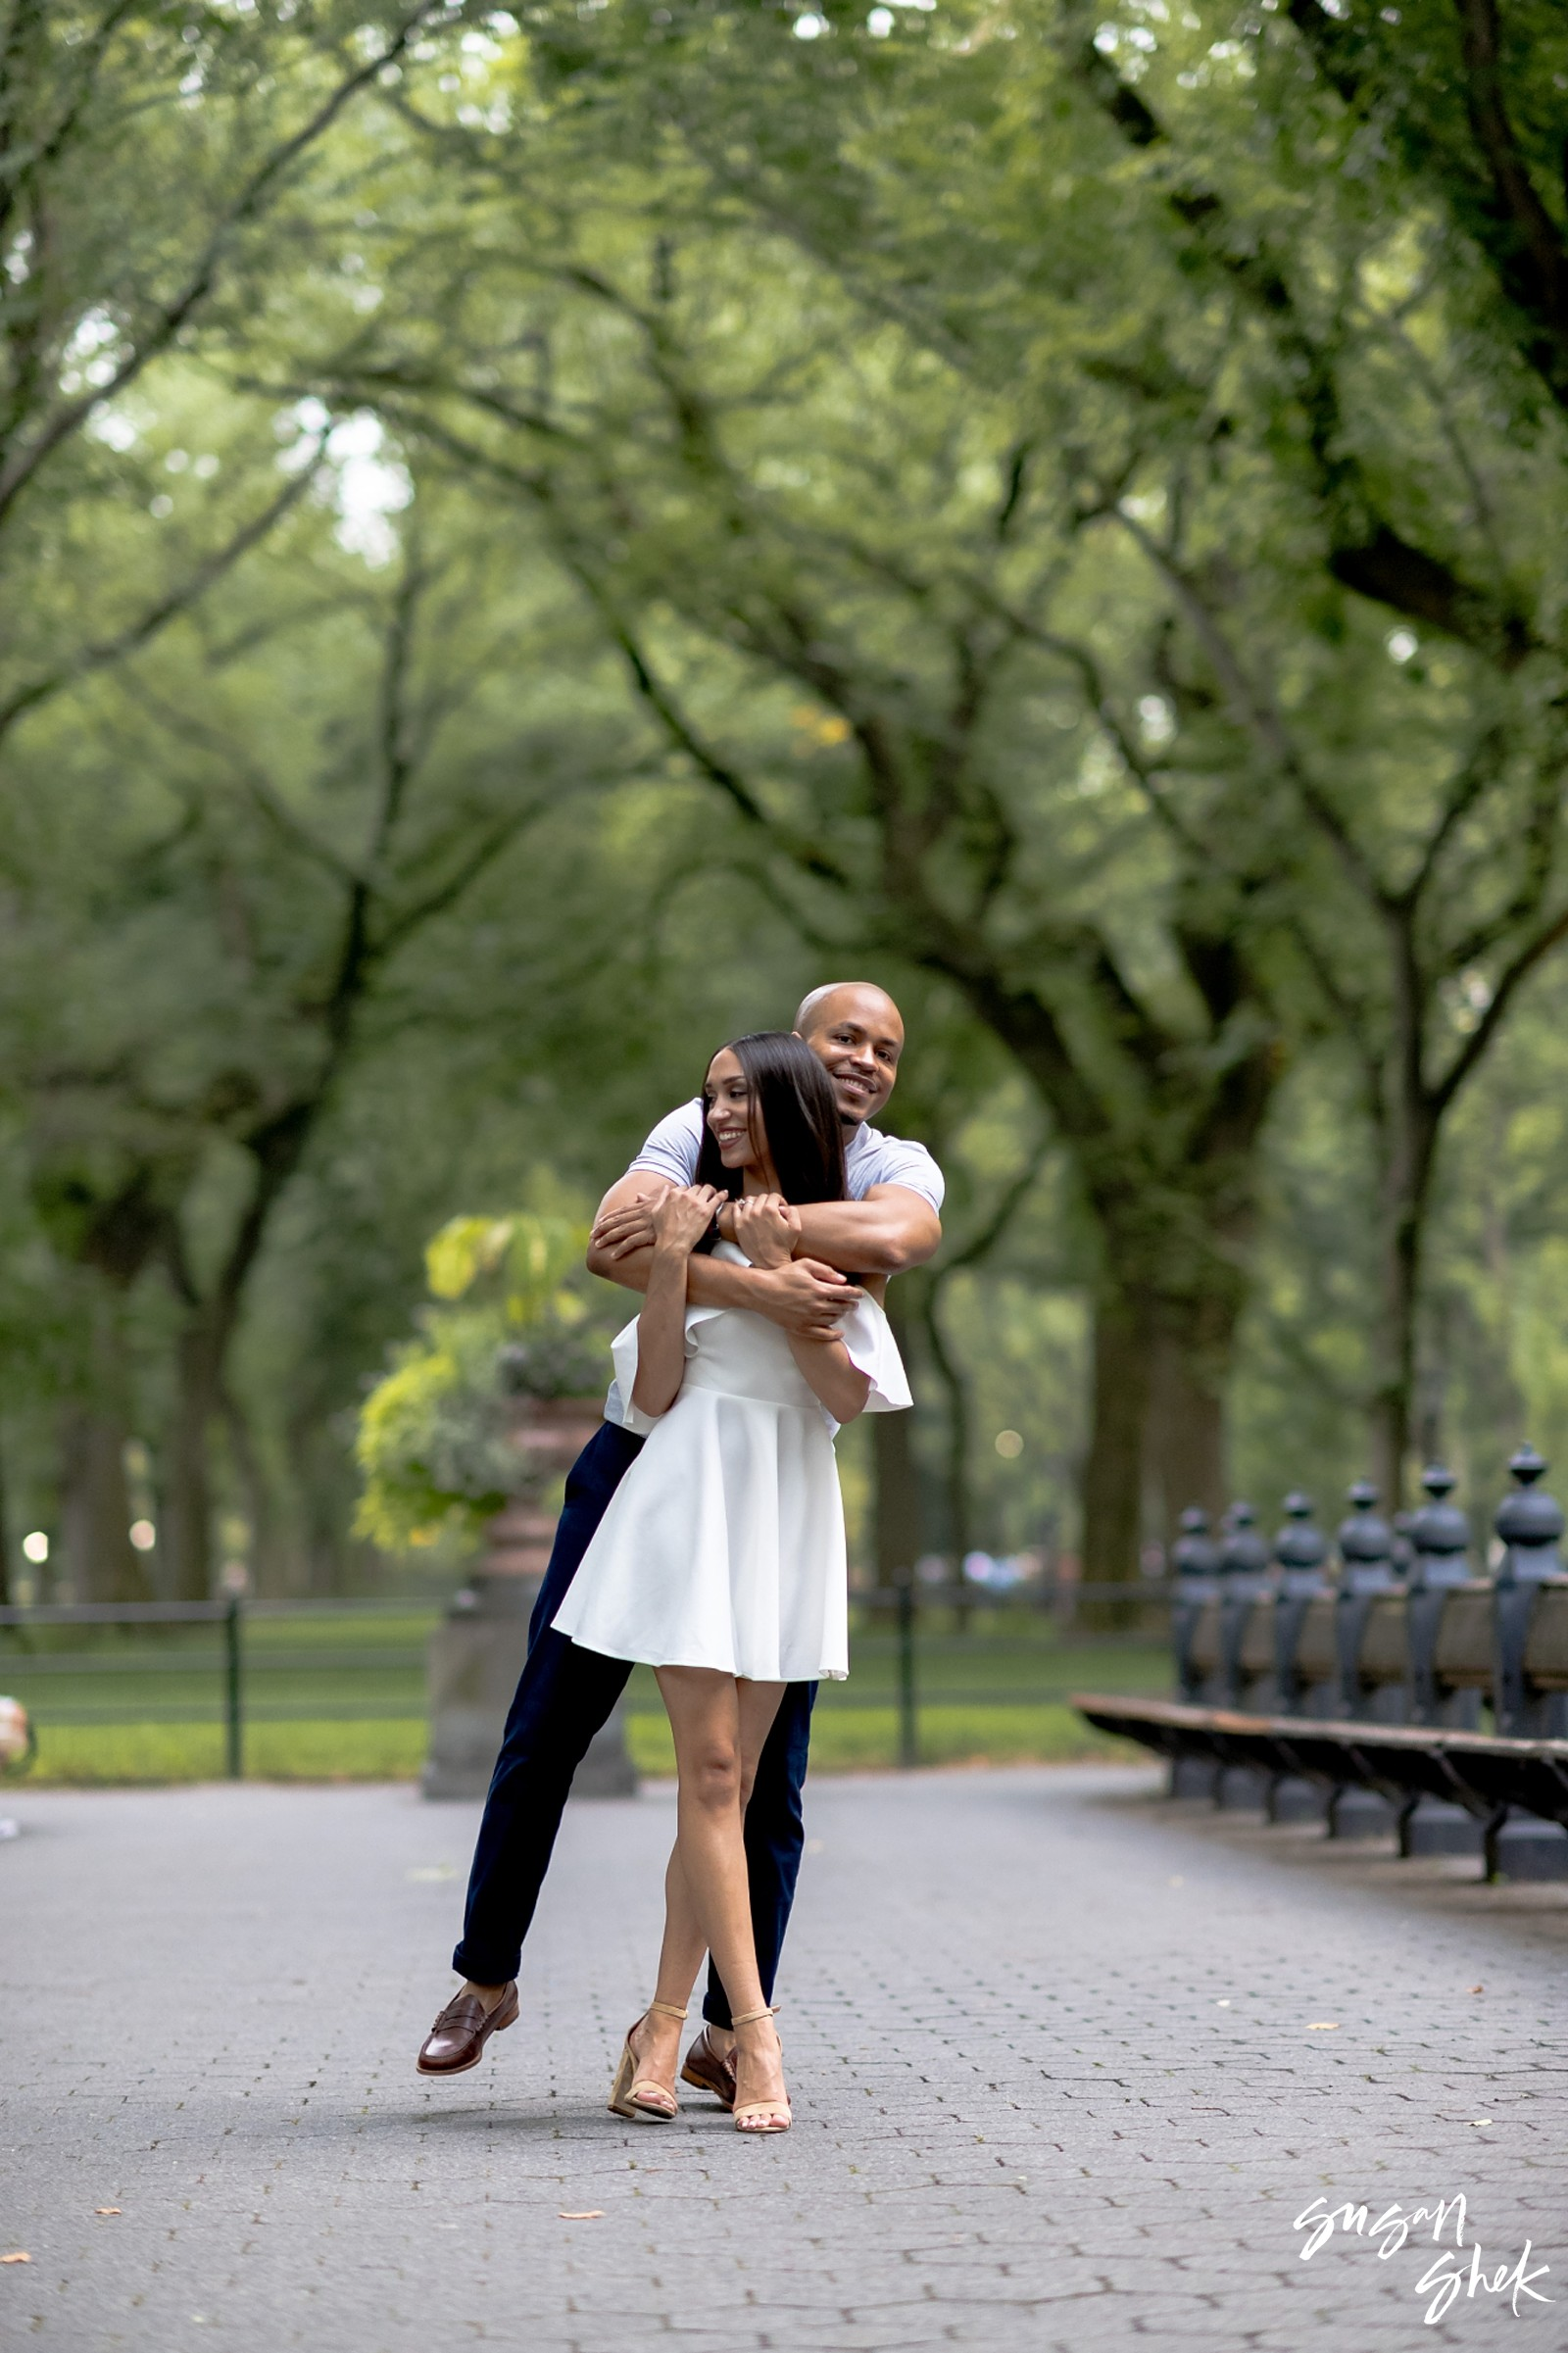 At the famous central park mall with an engaged couple for their photo shoot in the park, Engagement Shoot, NYC Engagement Photographer, Engagement Session, Engagement Photography, Engagement Photographer, NYC Wedding Photographer